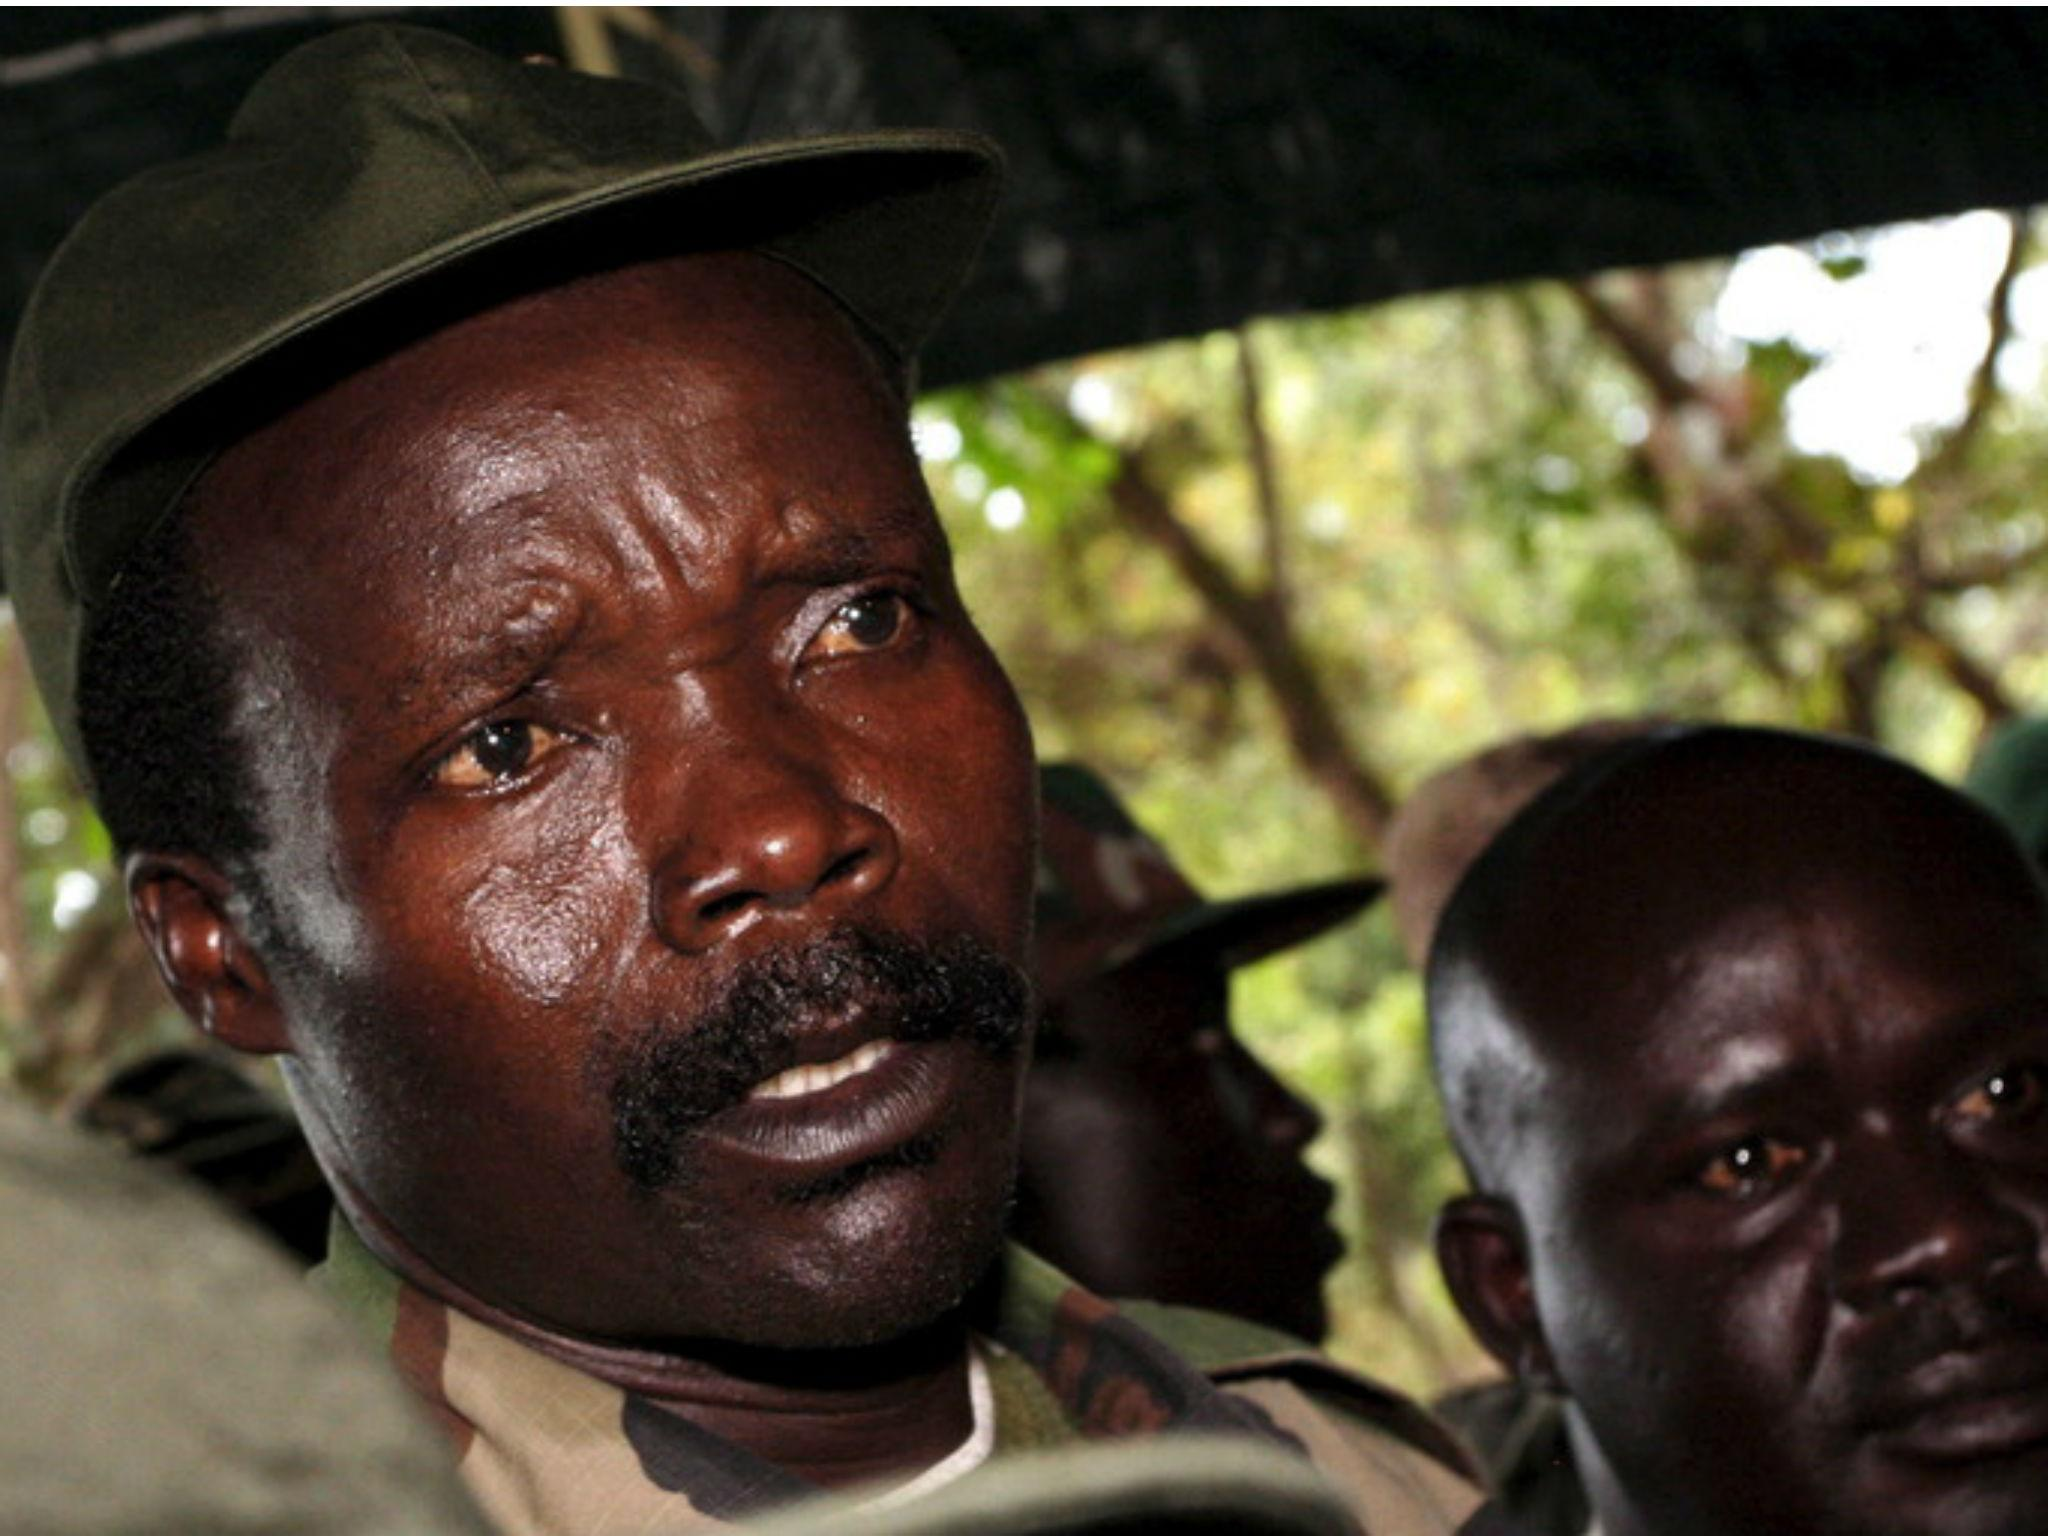 Ugandan army calls off search for Joseph Kony, says Lords Resistance Army no longer a threat   The Independentindependent_brand_ident_LOGOUntitled